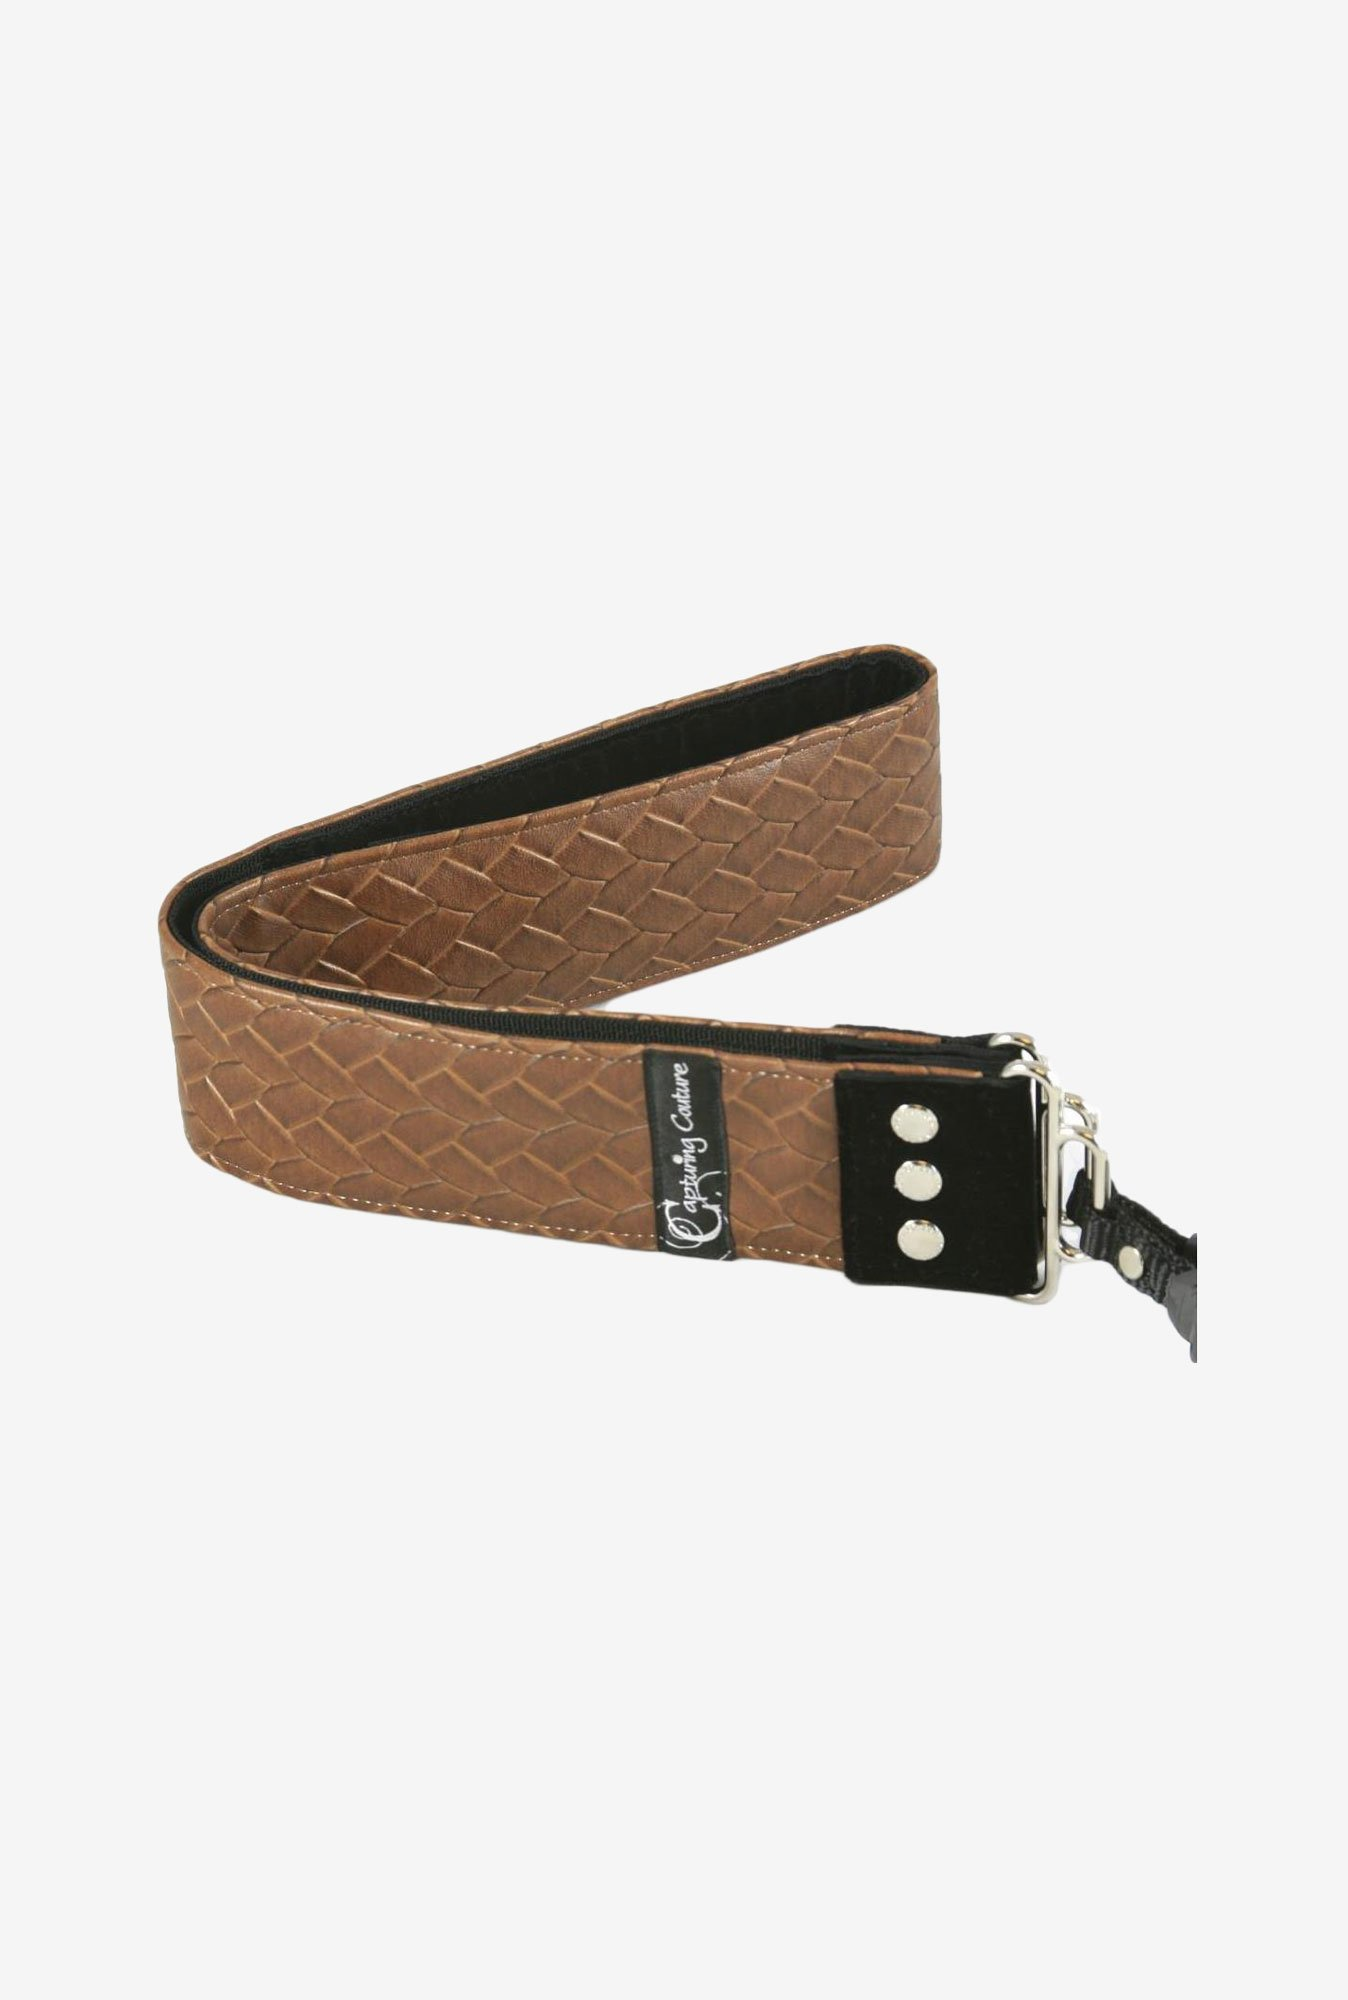 Capturing Couture SLR20-ABBN Camera Strap (Brown)